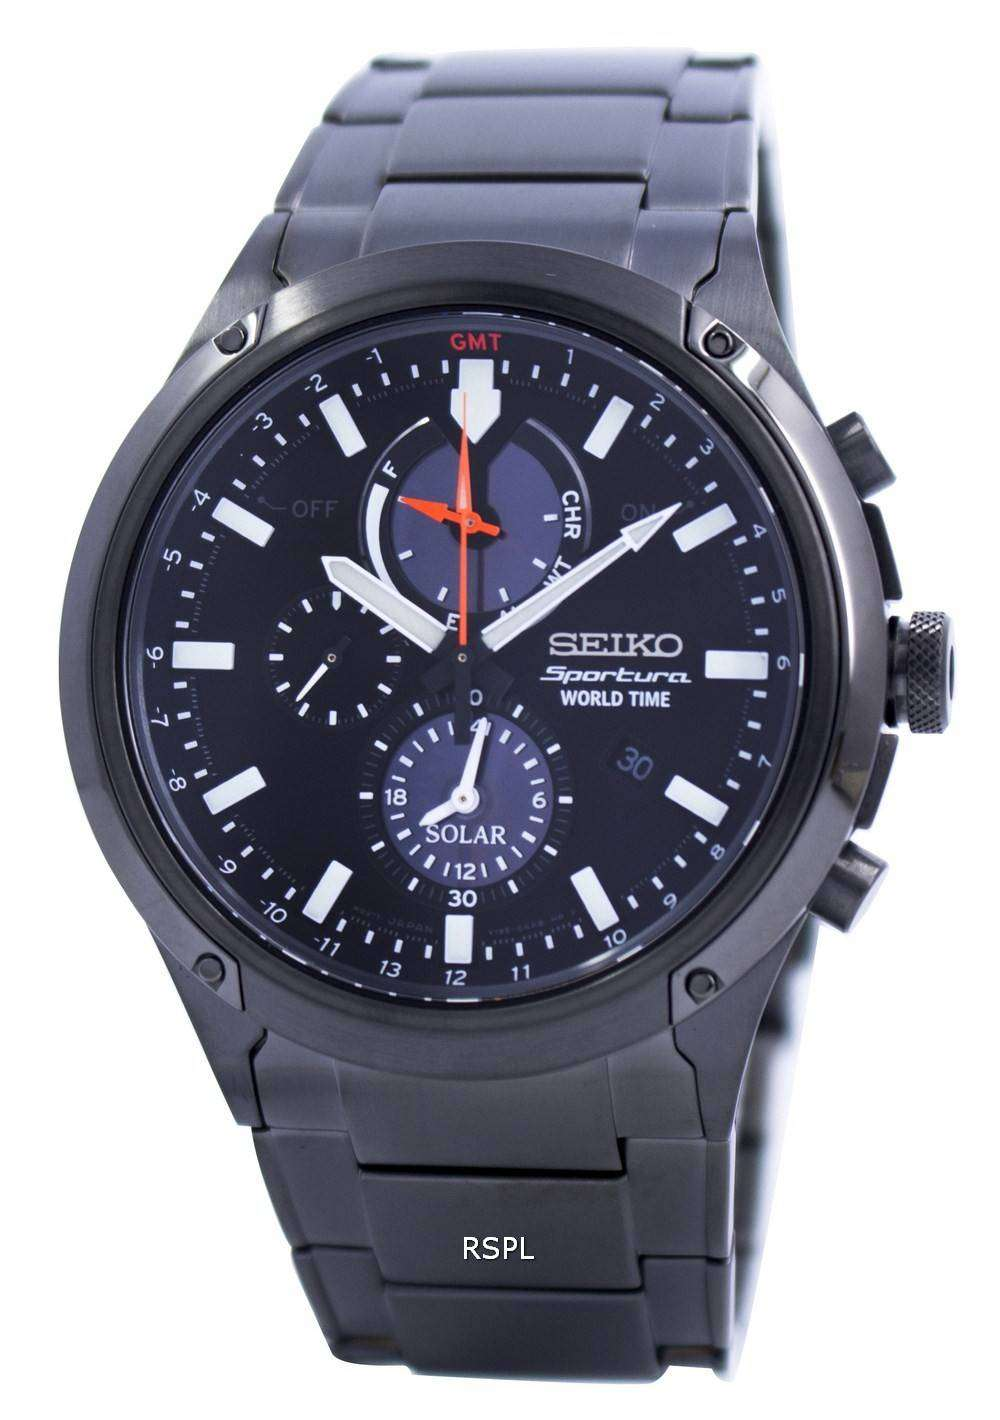 seiko sportura world time solar chronograph ssc481. Black Bedroom Furniture Sets. Home Design Ideas